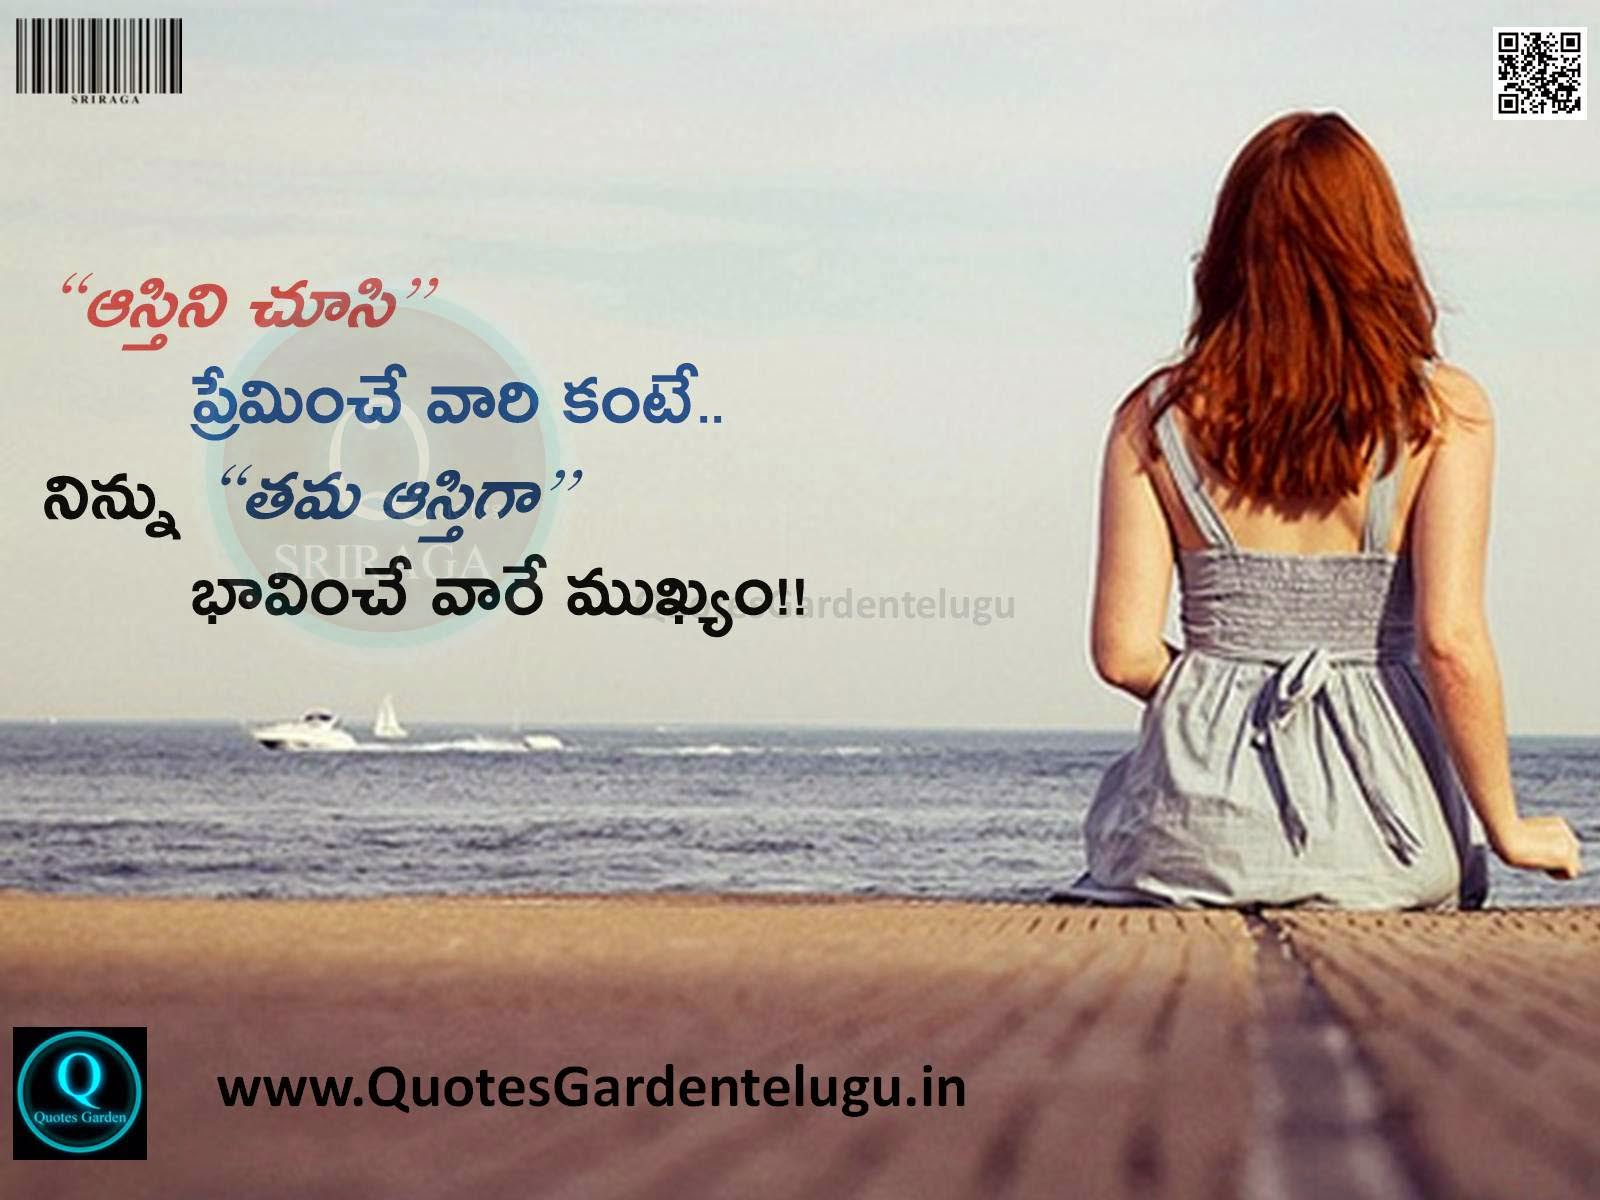 Quotes Friendship Custom Ravikumar Ravikumar9063870 On Pinterest